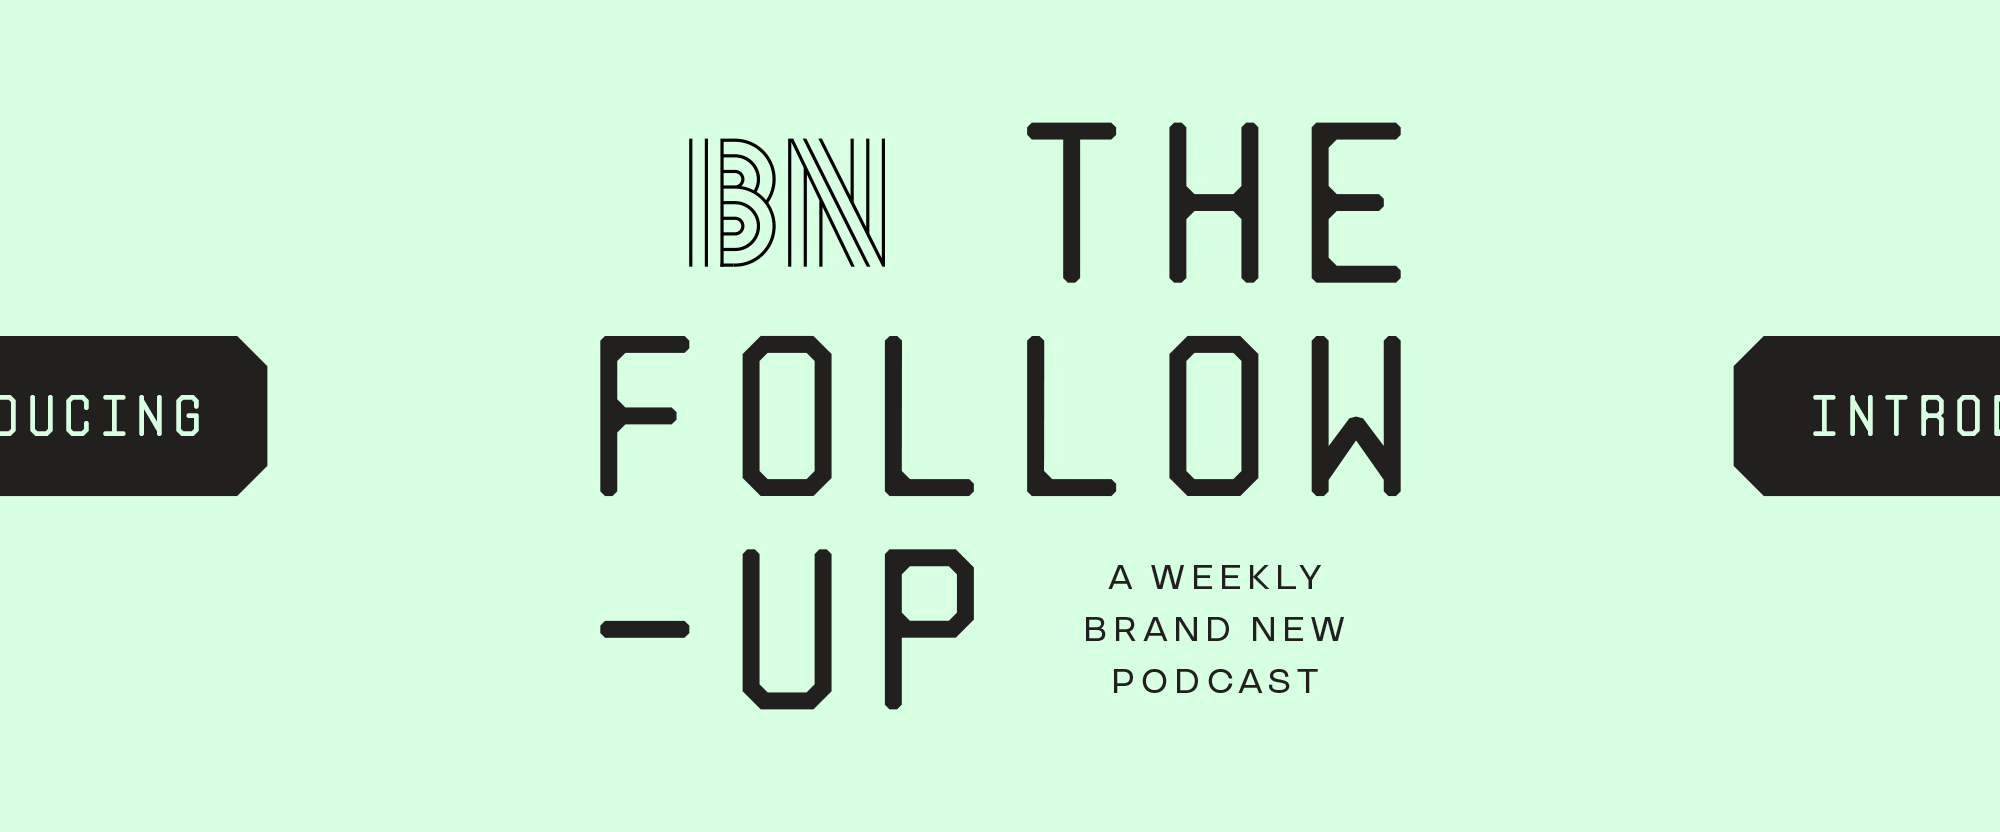 Introducing the Brand New Podcast: The Follow-up!